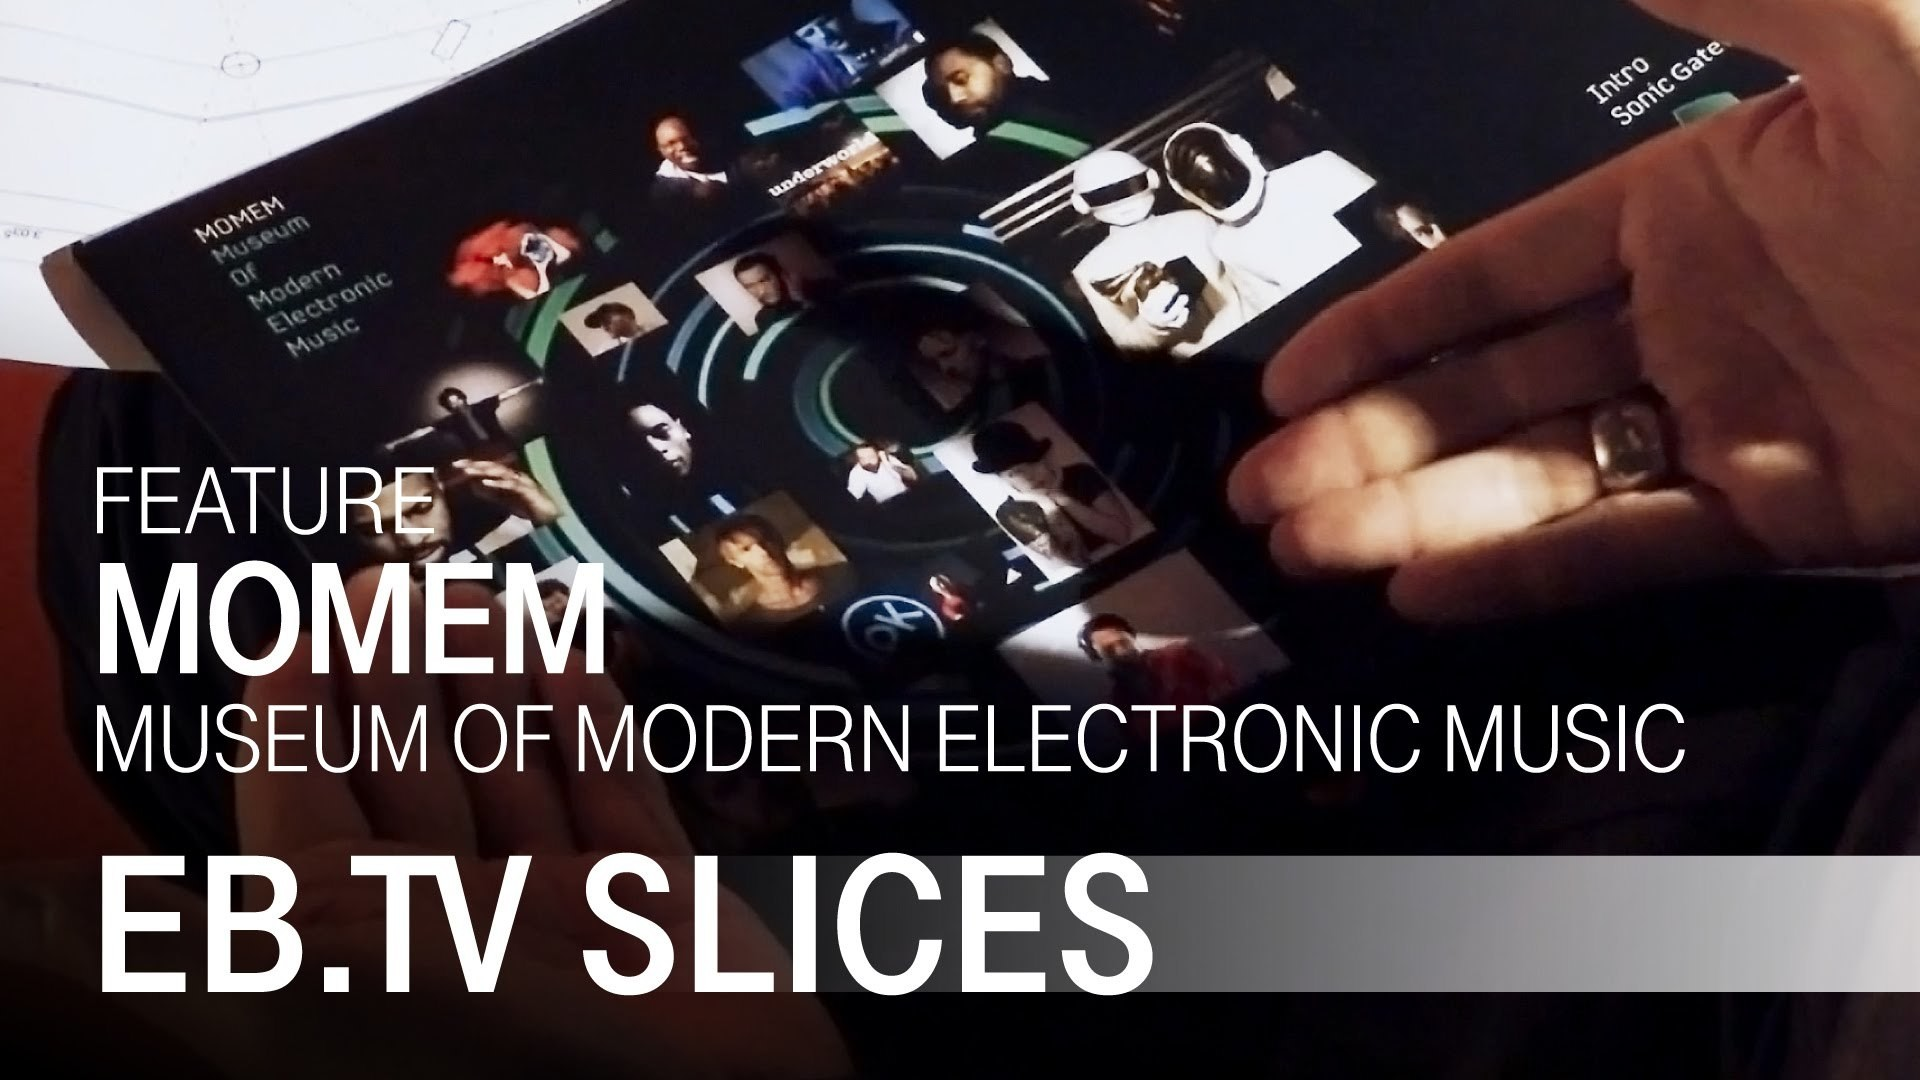 Watch: An Interview With a Co-Founder and a Designer Behind the World's First Electronic Music Museum